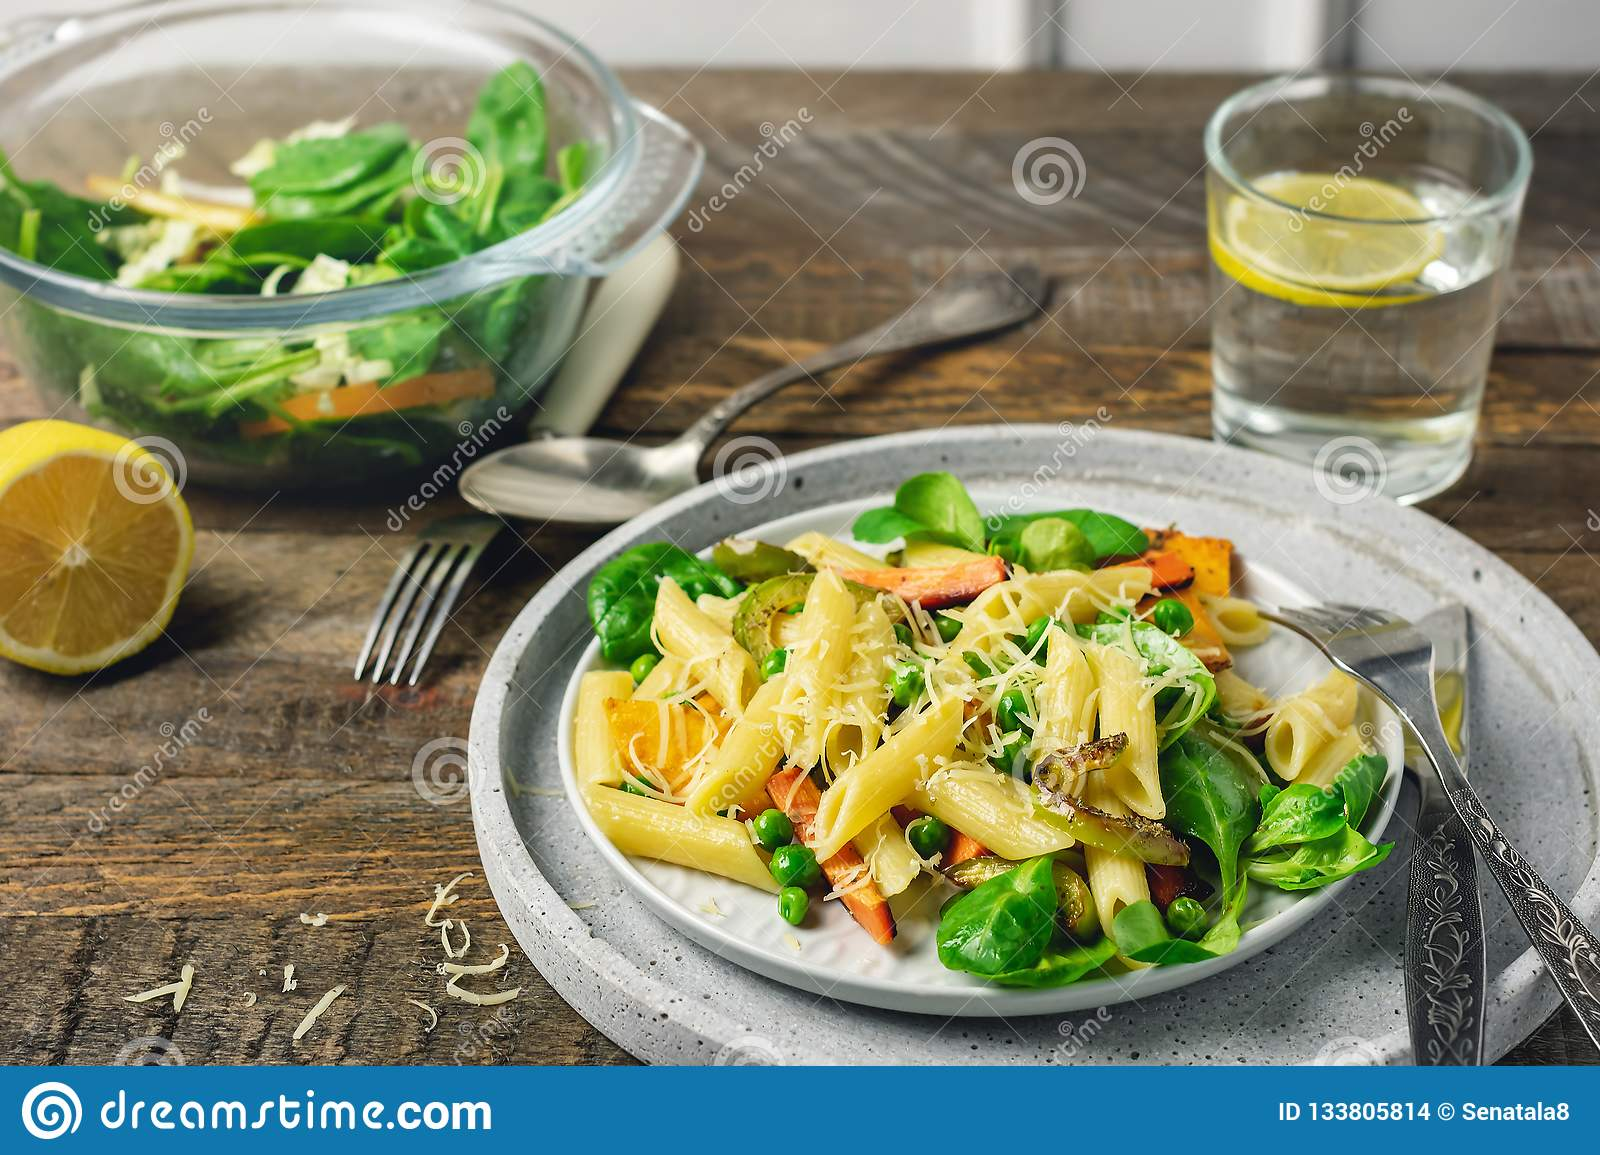 Penne pasta with grilled vegetables